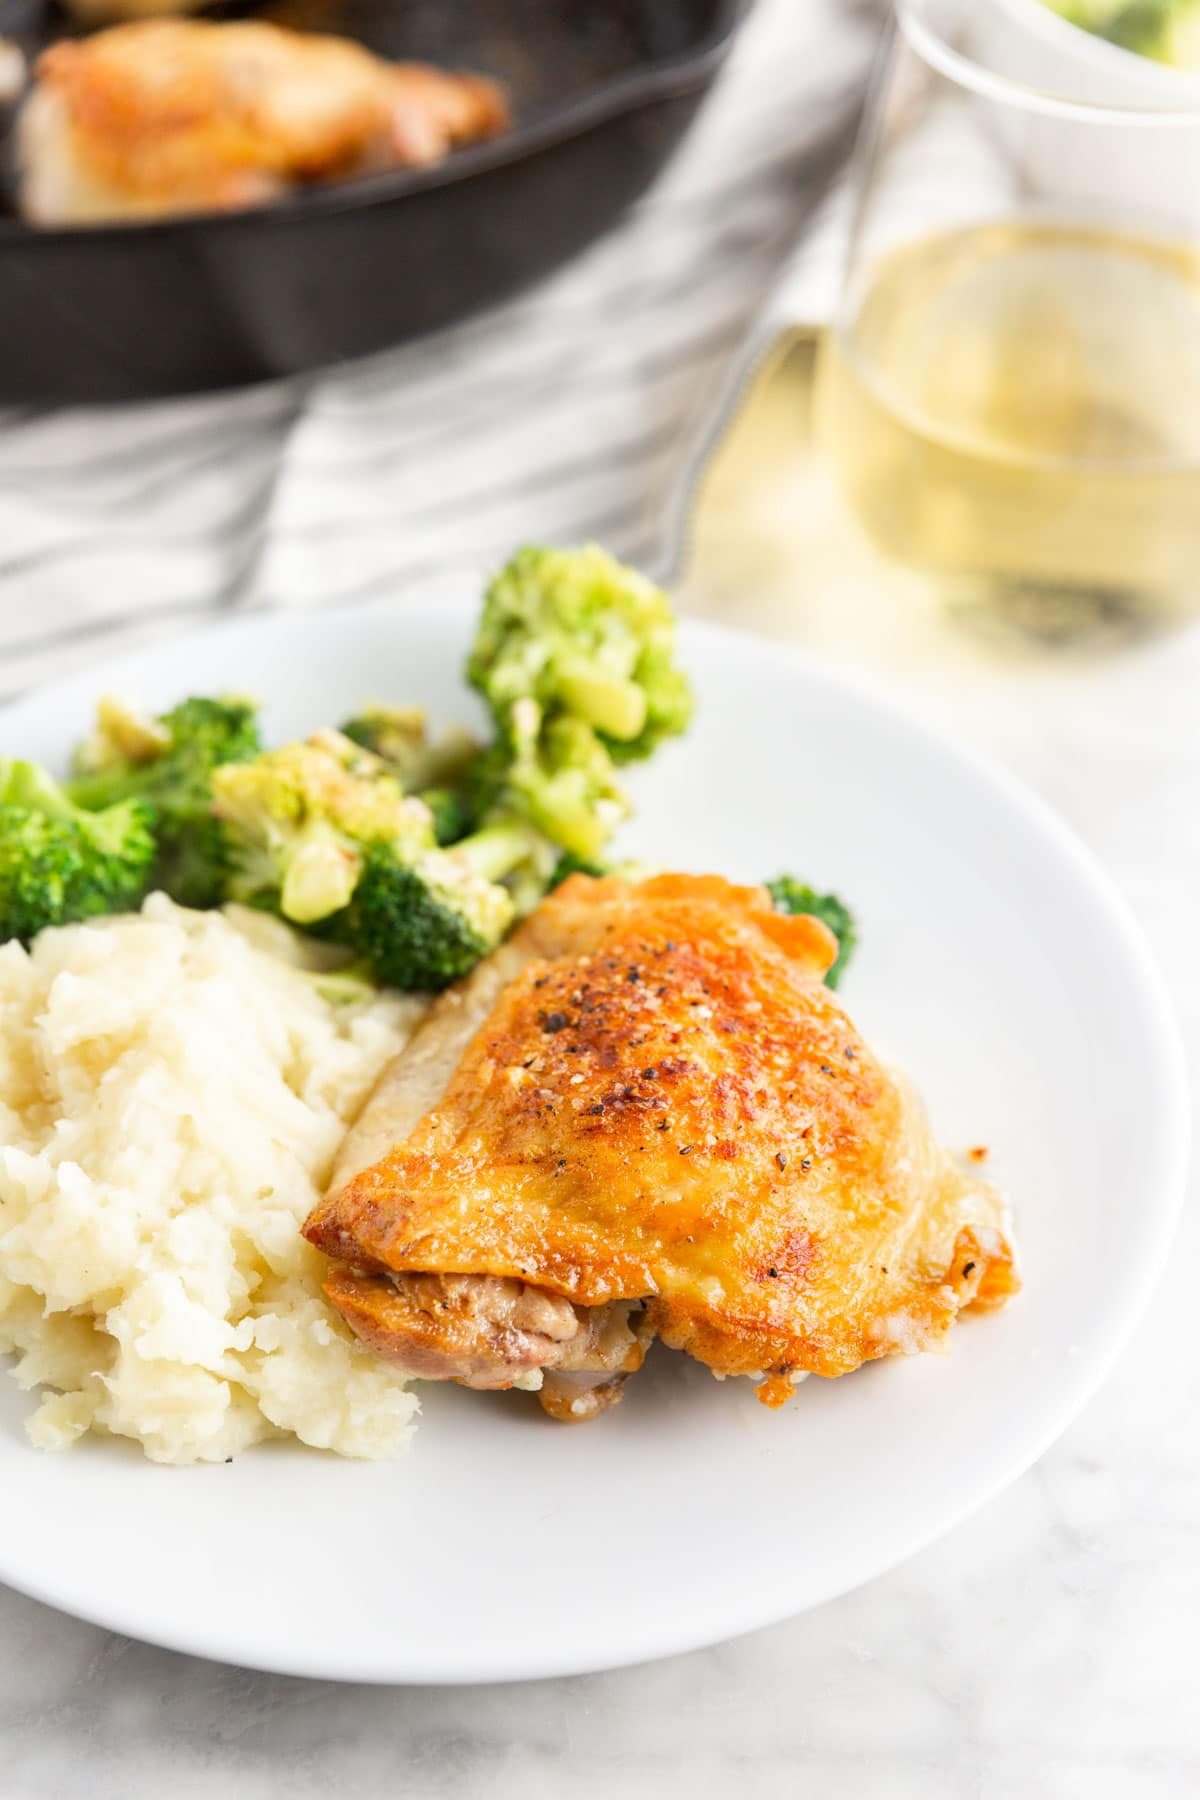 A dinner plate with roasted chicken thighs, mashed potatoes and steamed broccoli with a cast iron skillet and a glass of wine in the background.